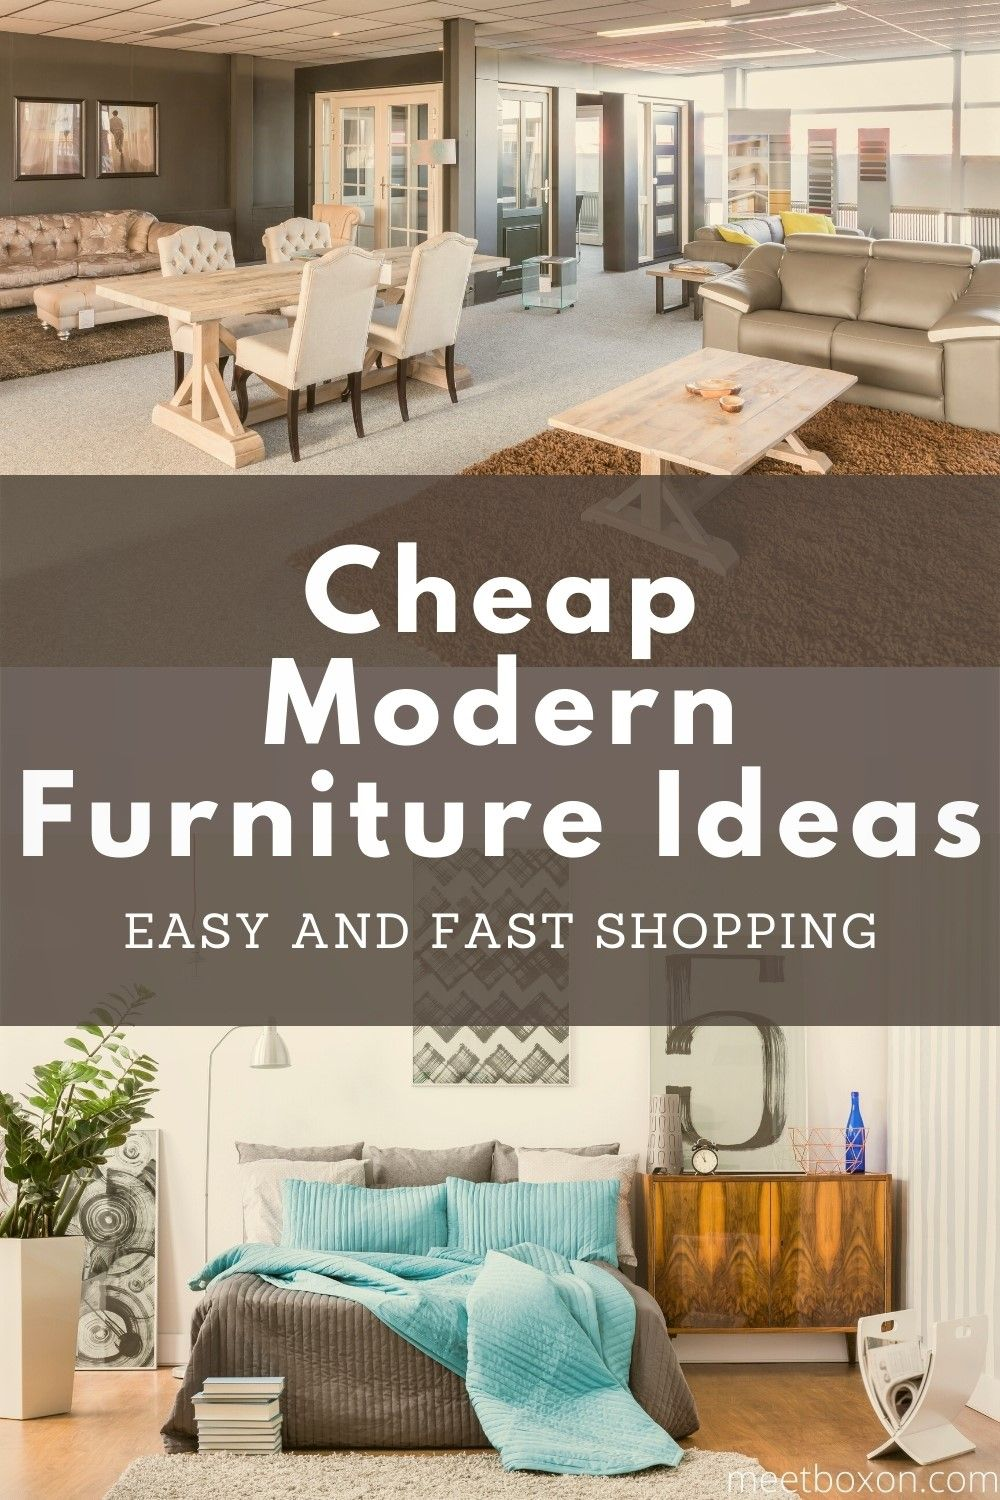 Cheap Modern Furniture Online Ideas For Easy And Fast Shopping In 2020 Cheap Modern Furniture Modern Furniture Online Modern Furniture